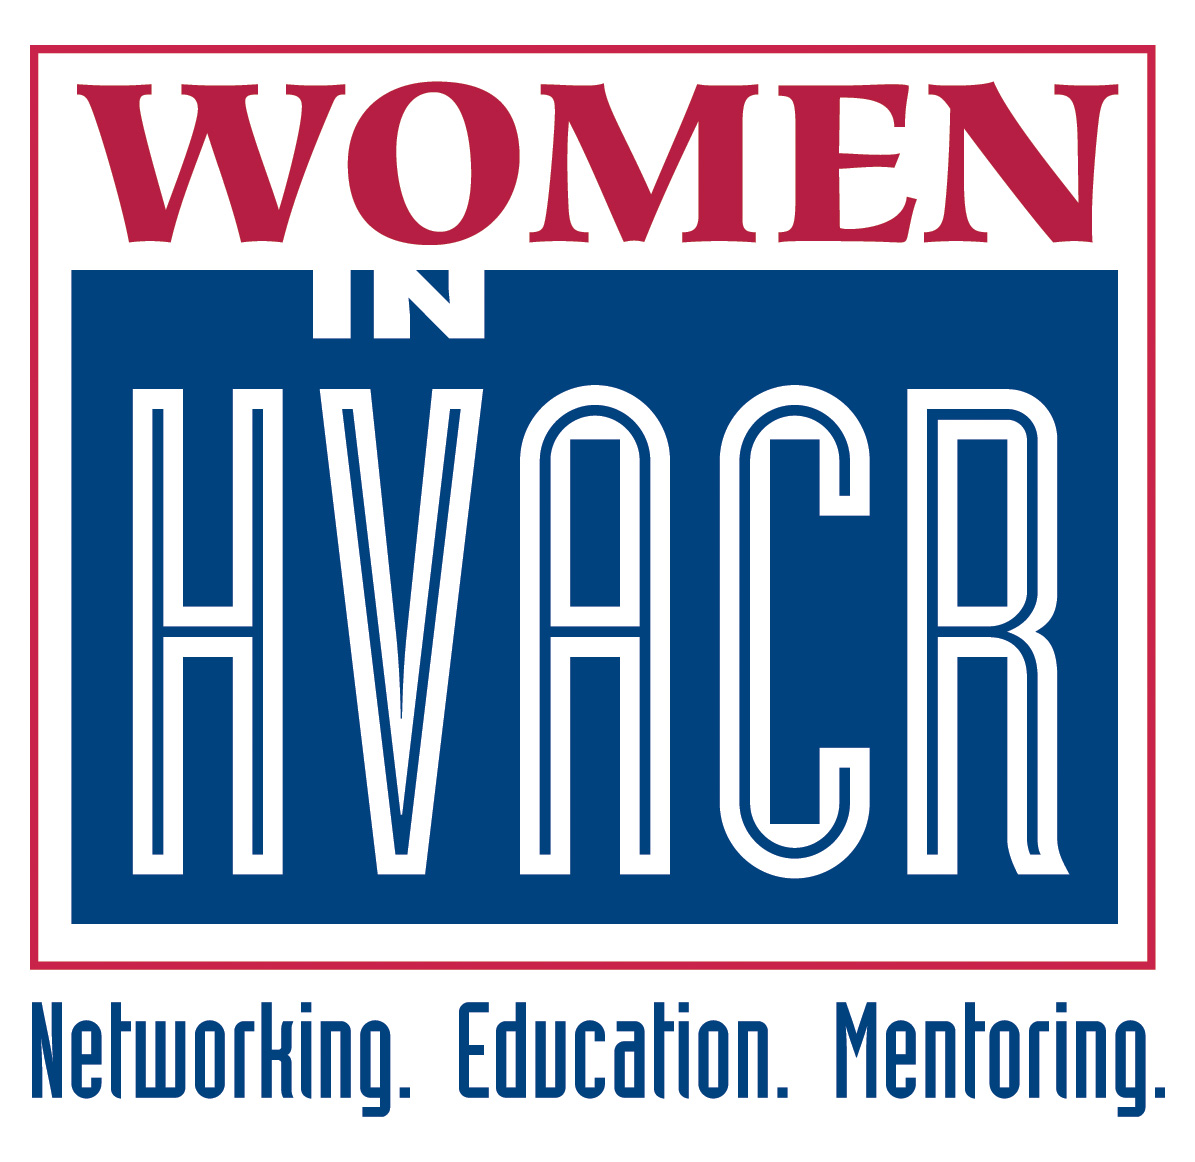 Call Women In HVACR for reliable  repair in